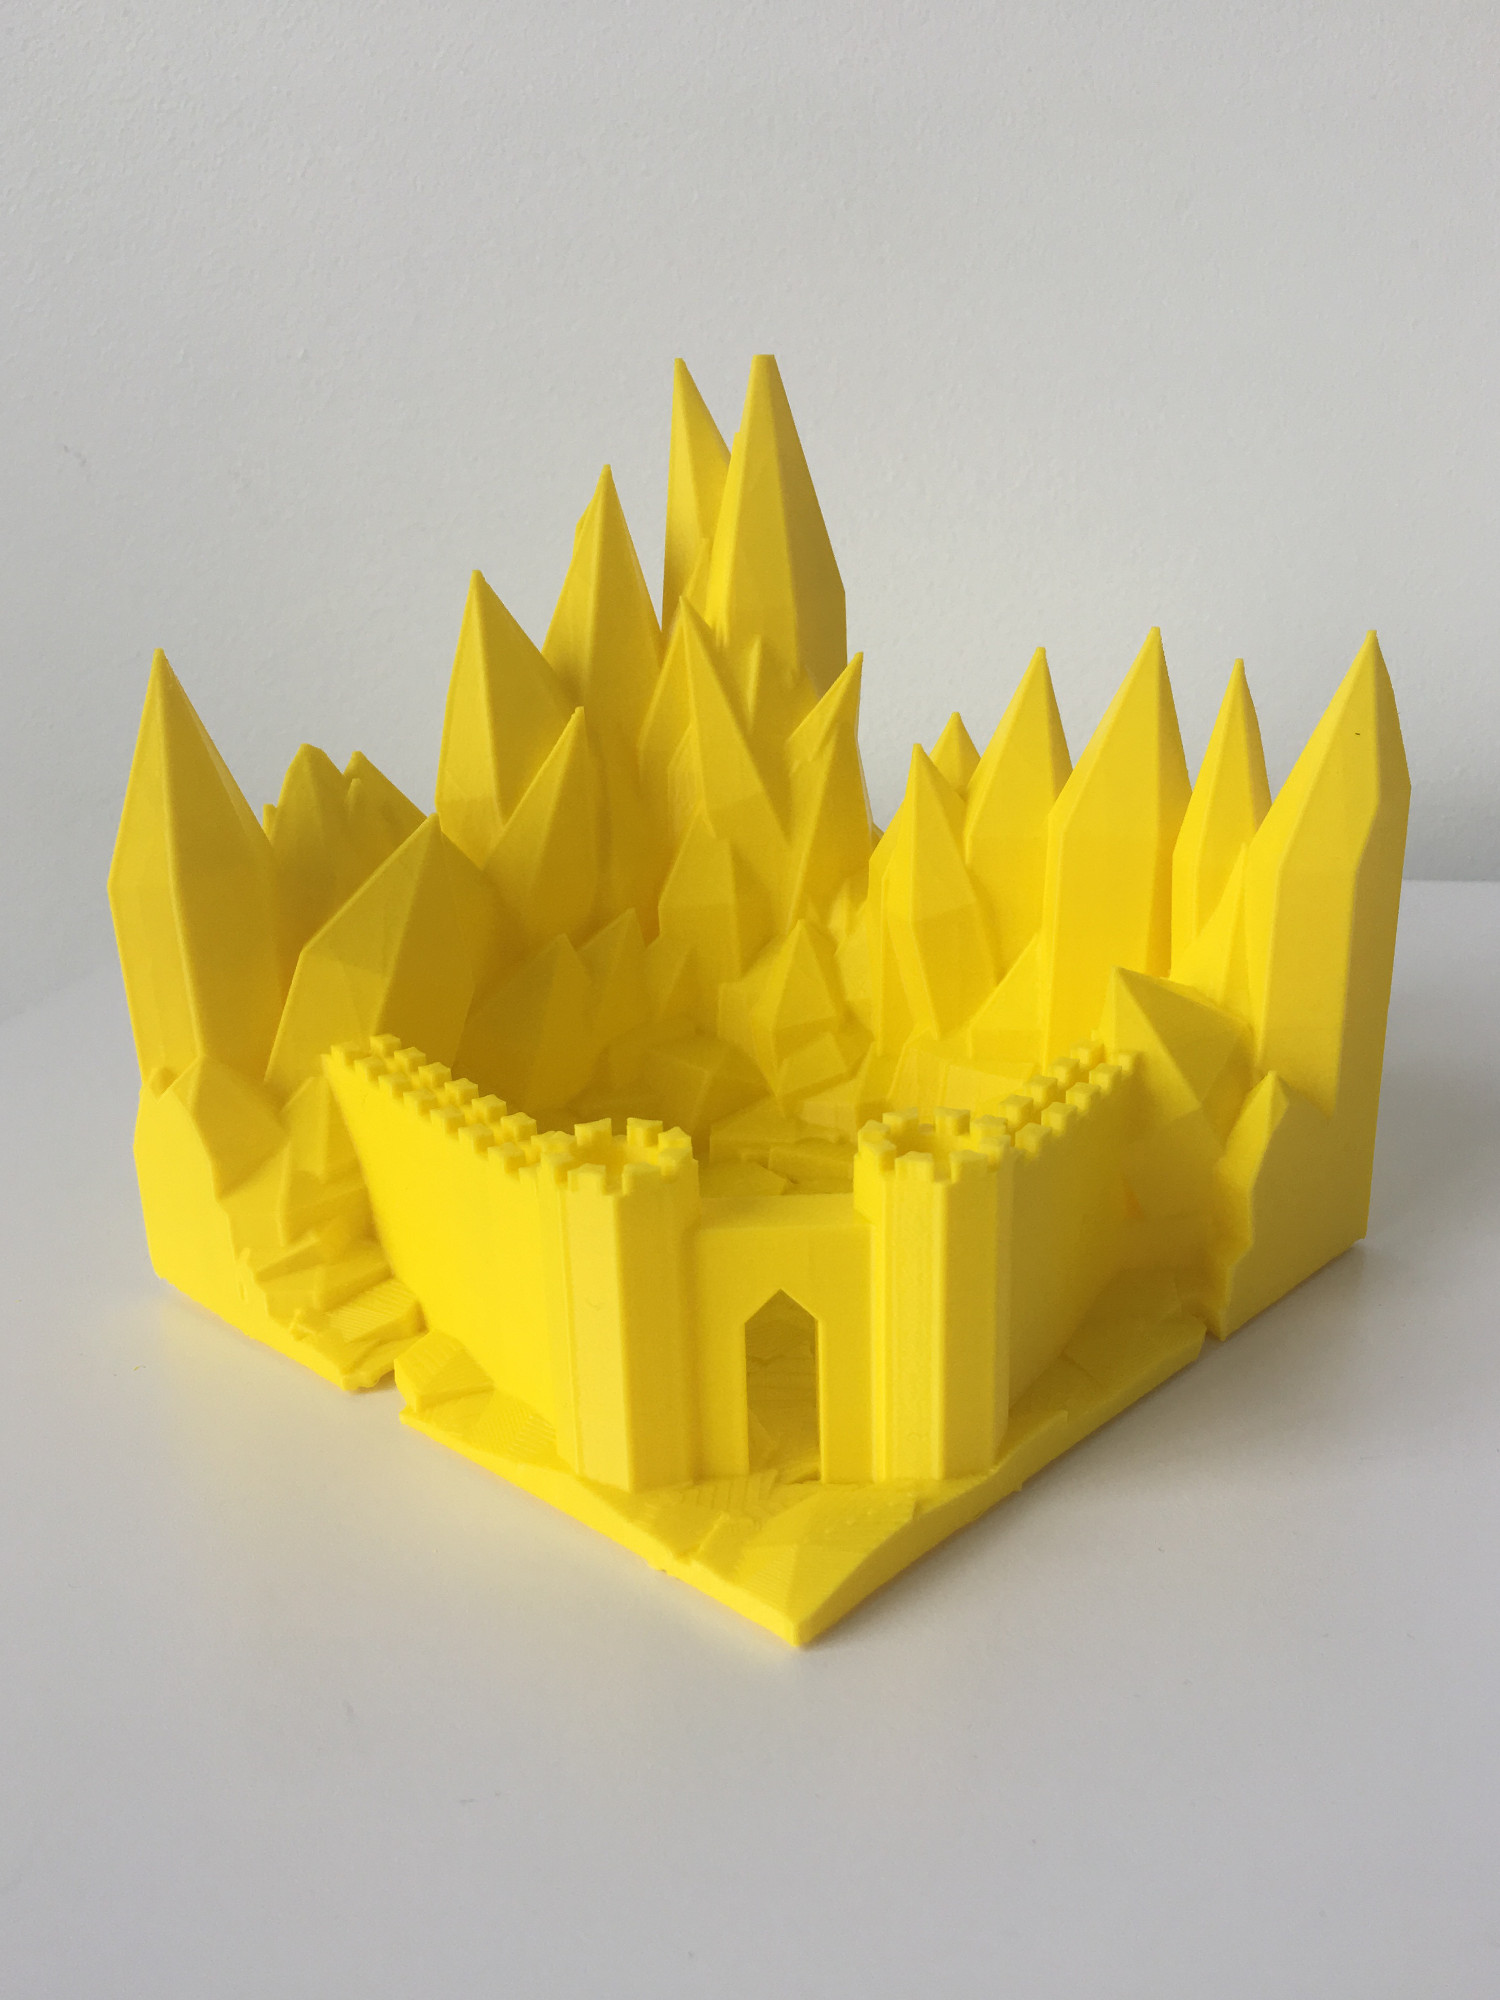 Yellow 3D printed castle